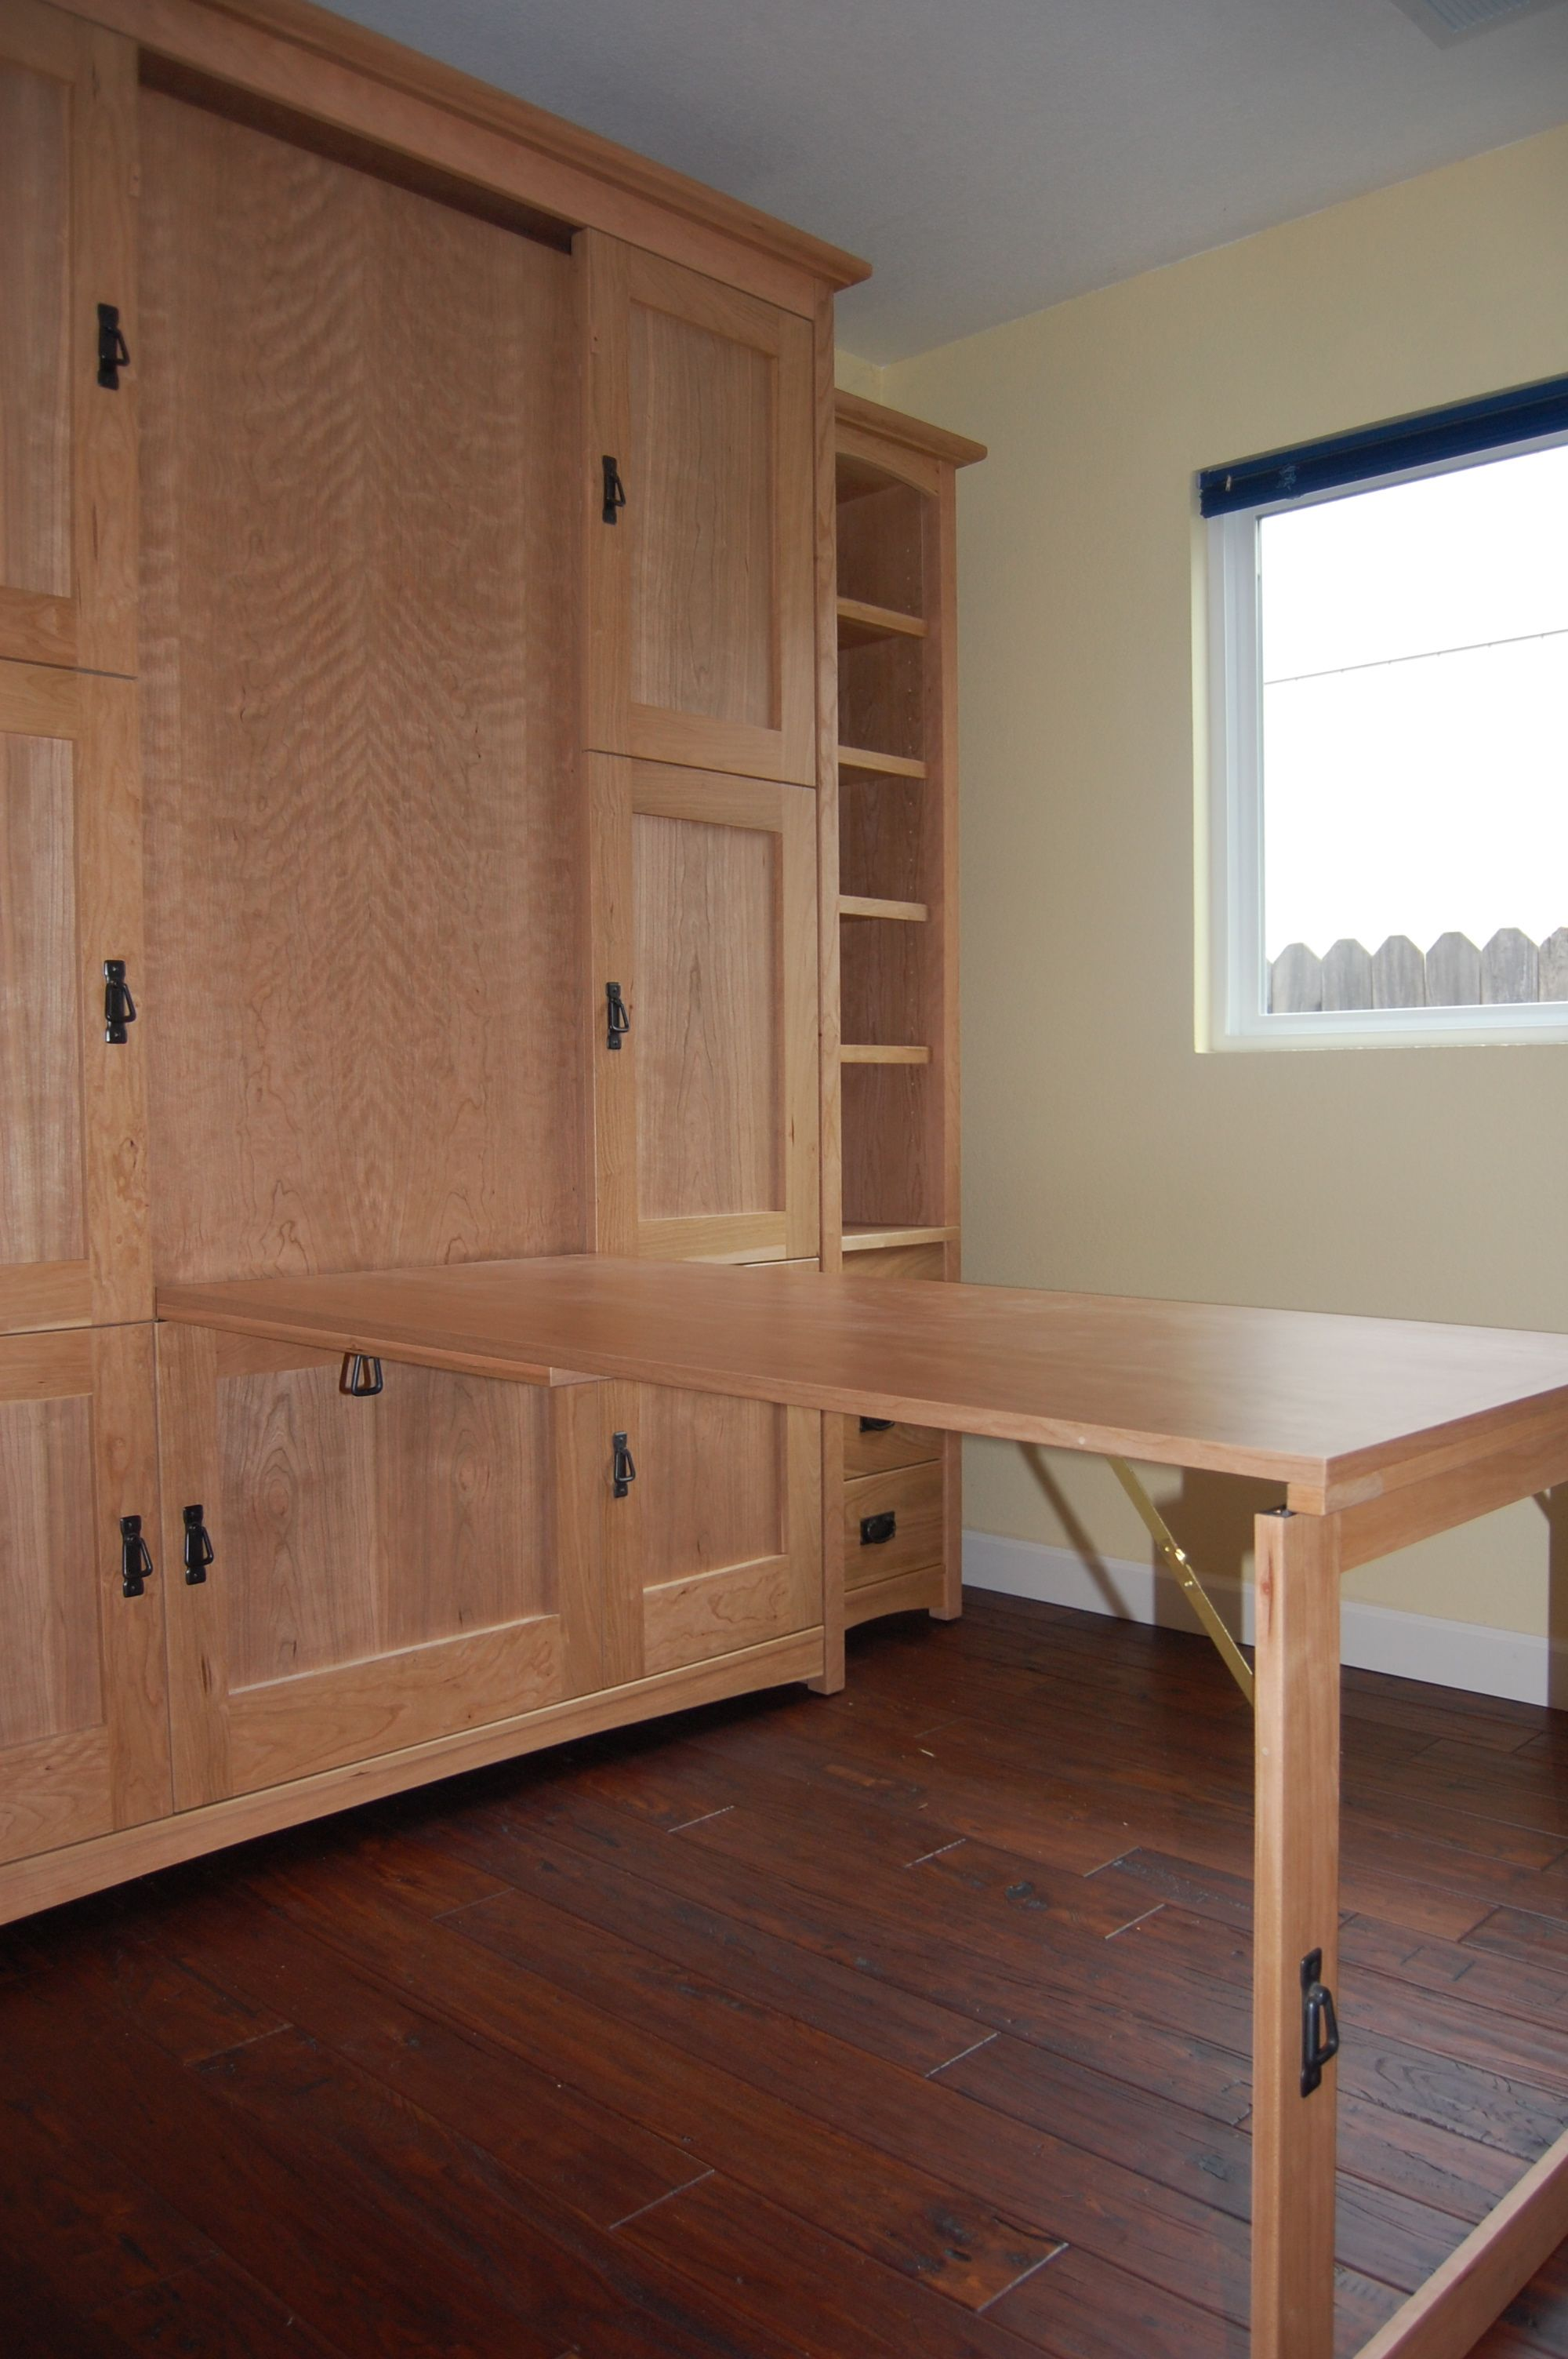 Wallbed Murphy Bed With Hidden Fold Down Table Or Desk Perfect For Home Office That Doubles